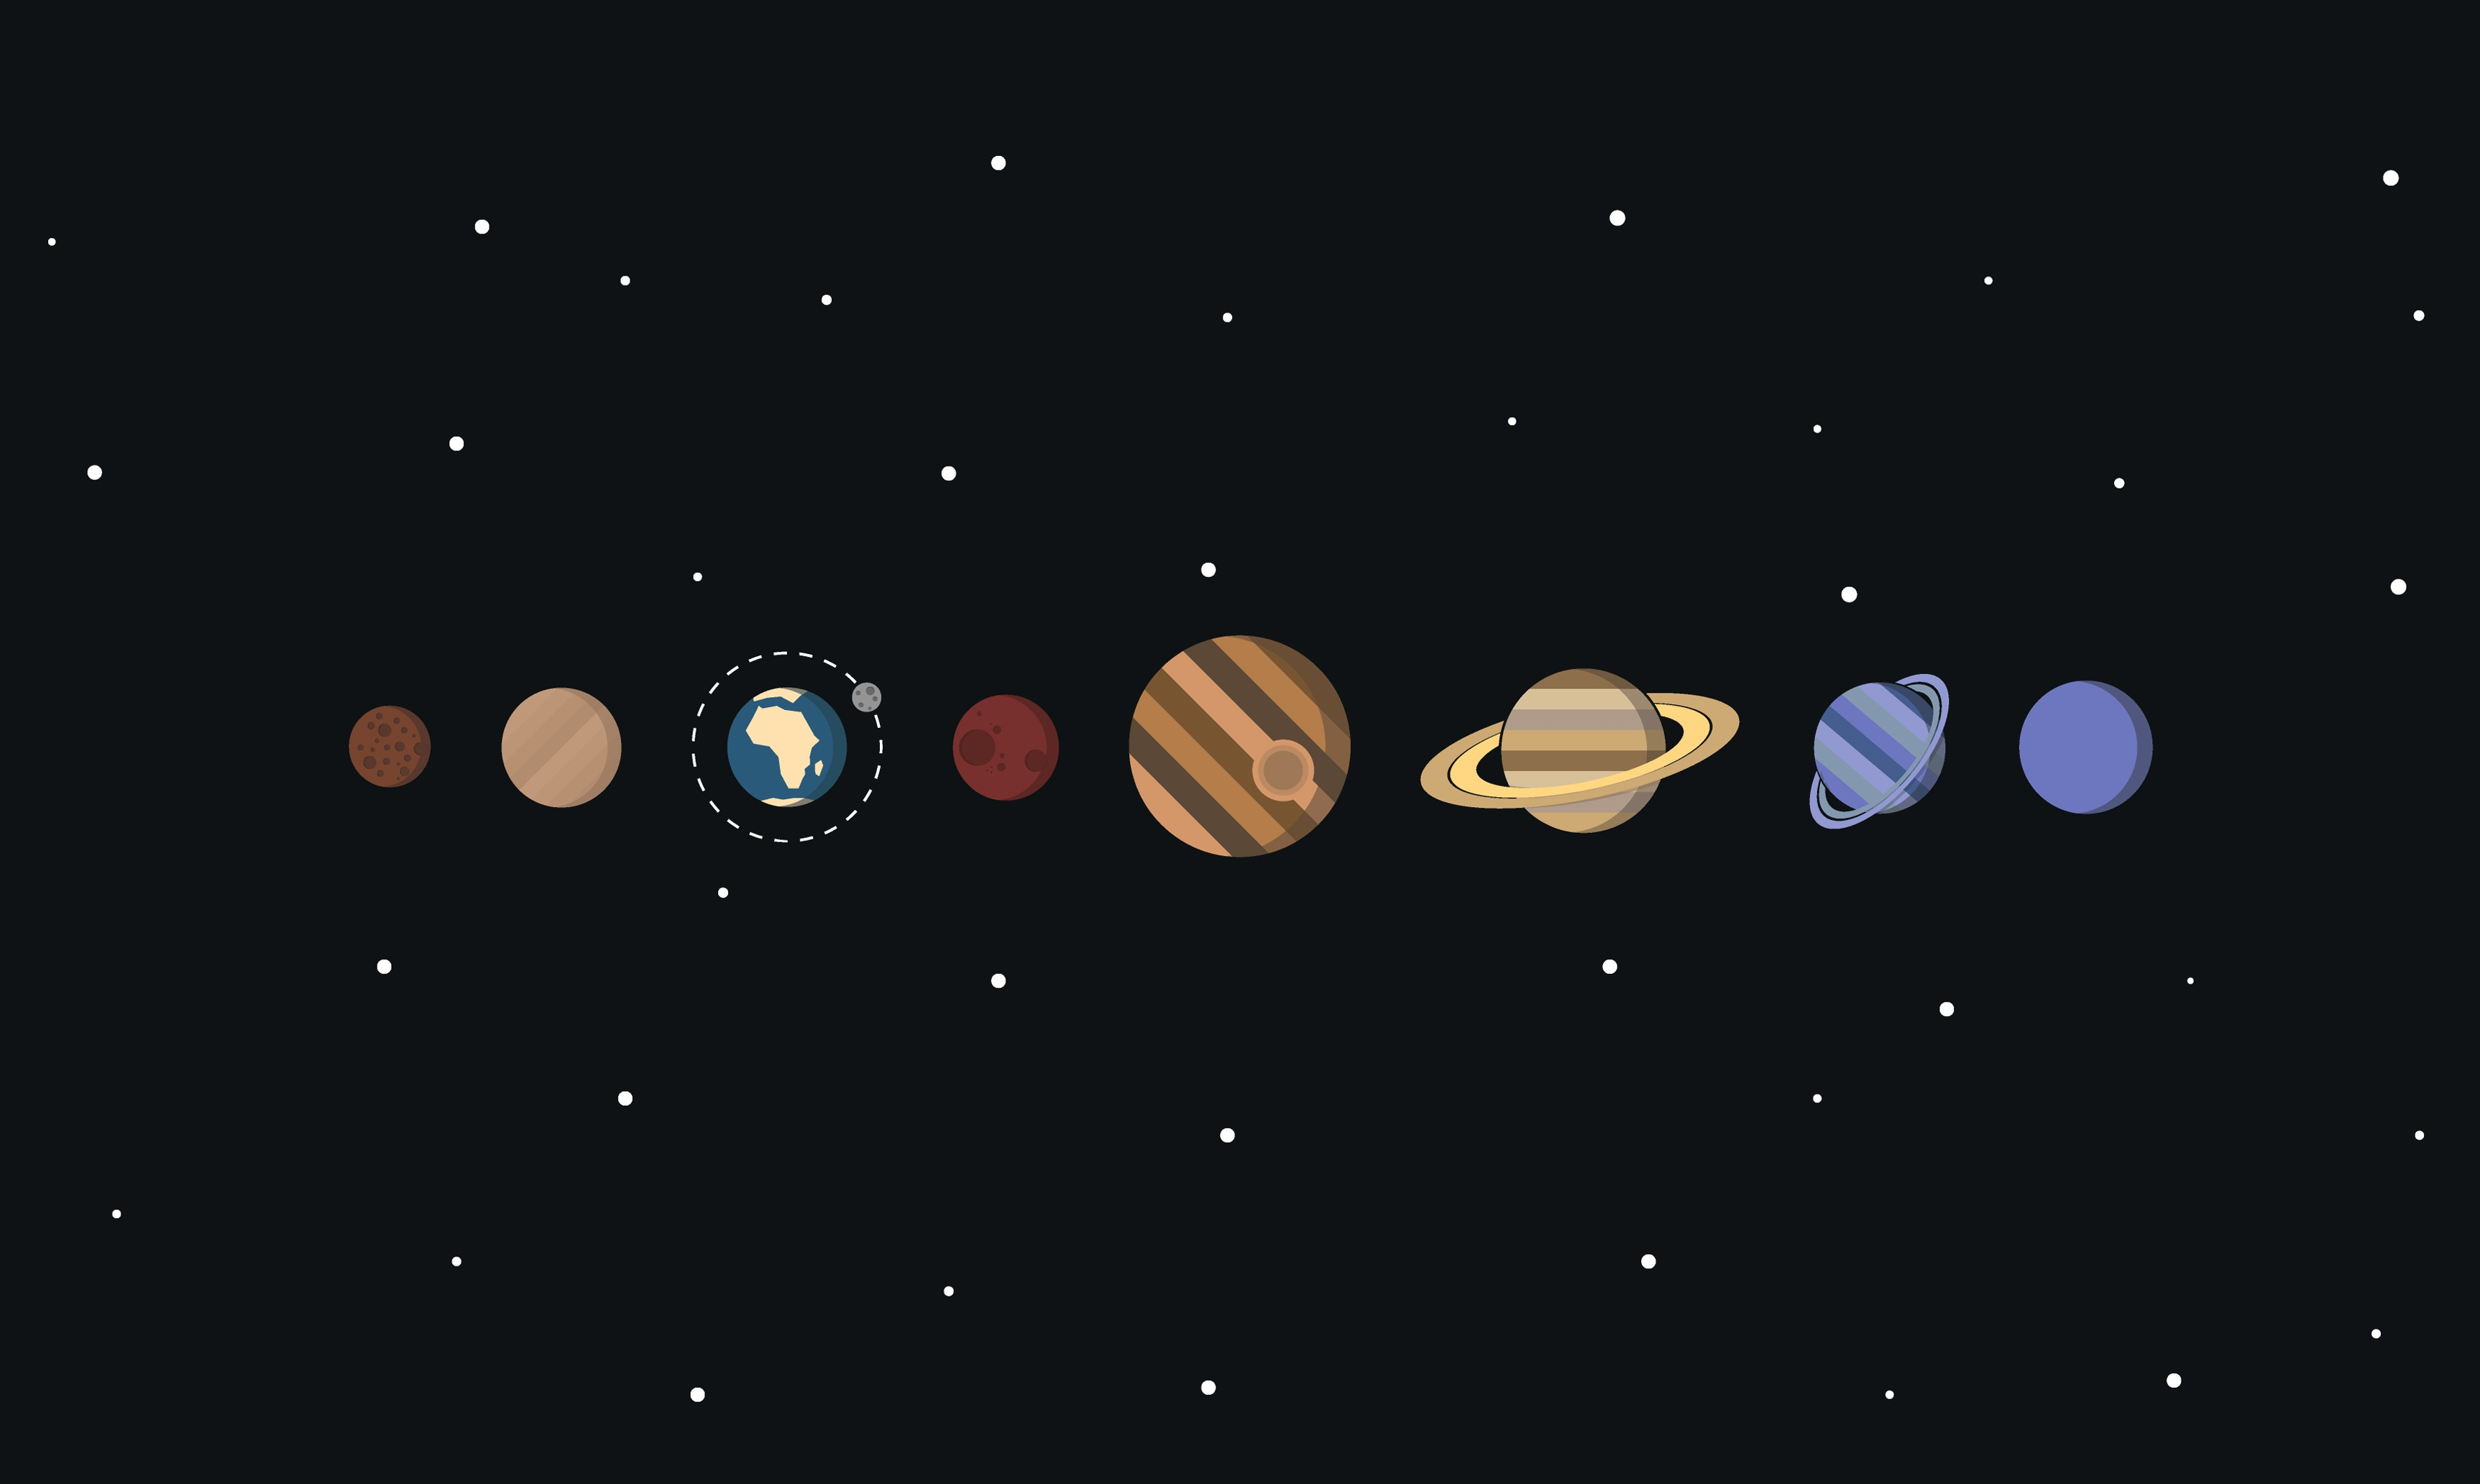 Solar System Minimalism Hd Artist 4k Wallpapers Images